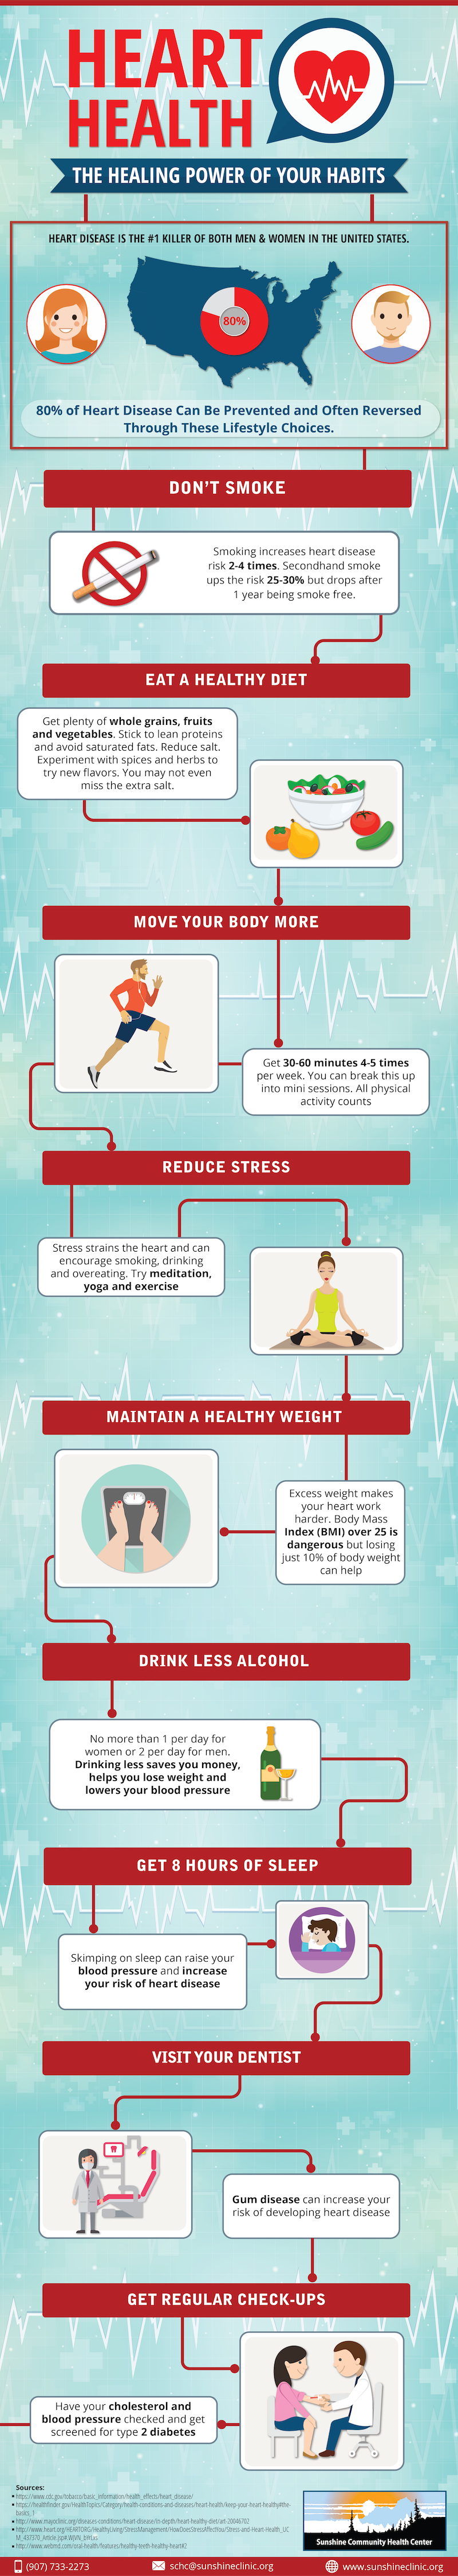 Heart Healthy Habits Infographic800px